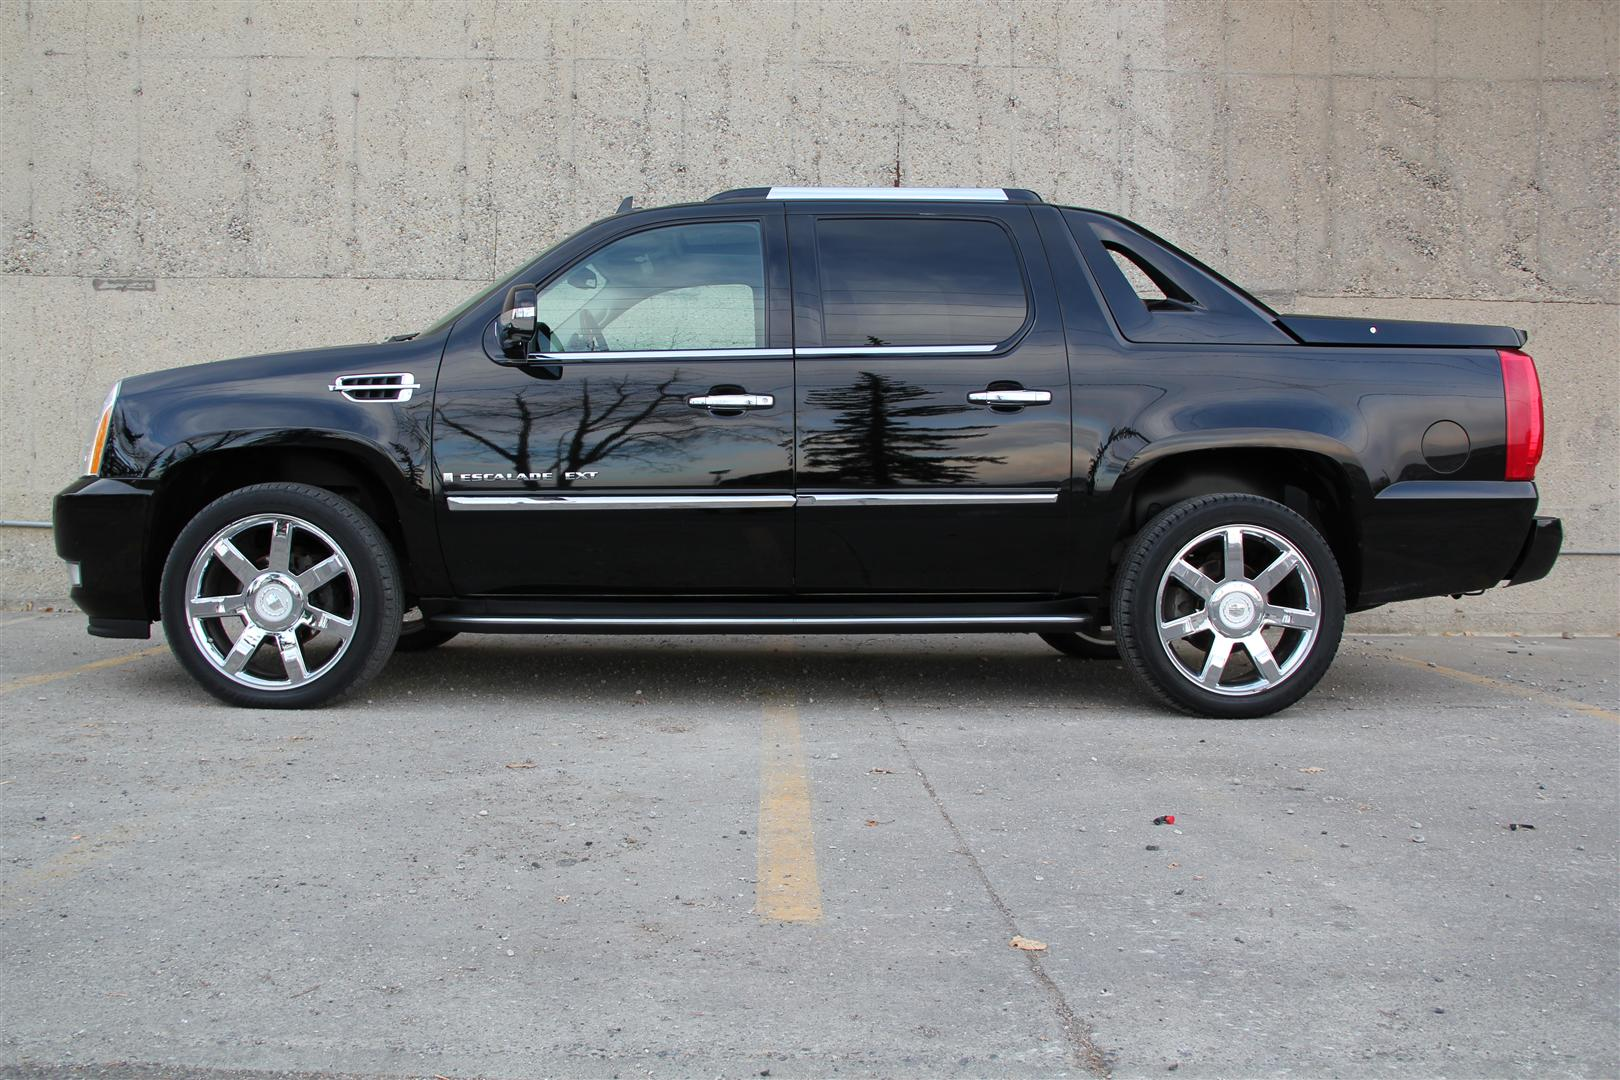 Cadillac Escalade EXT black #1